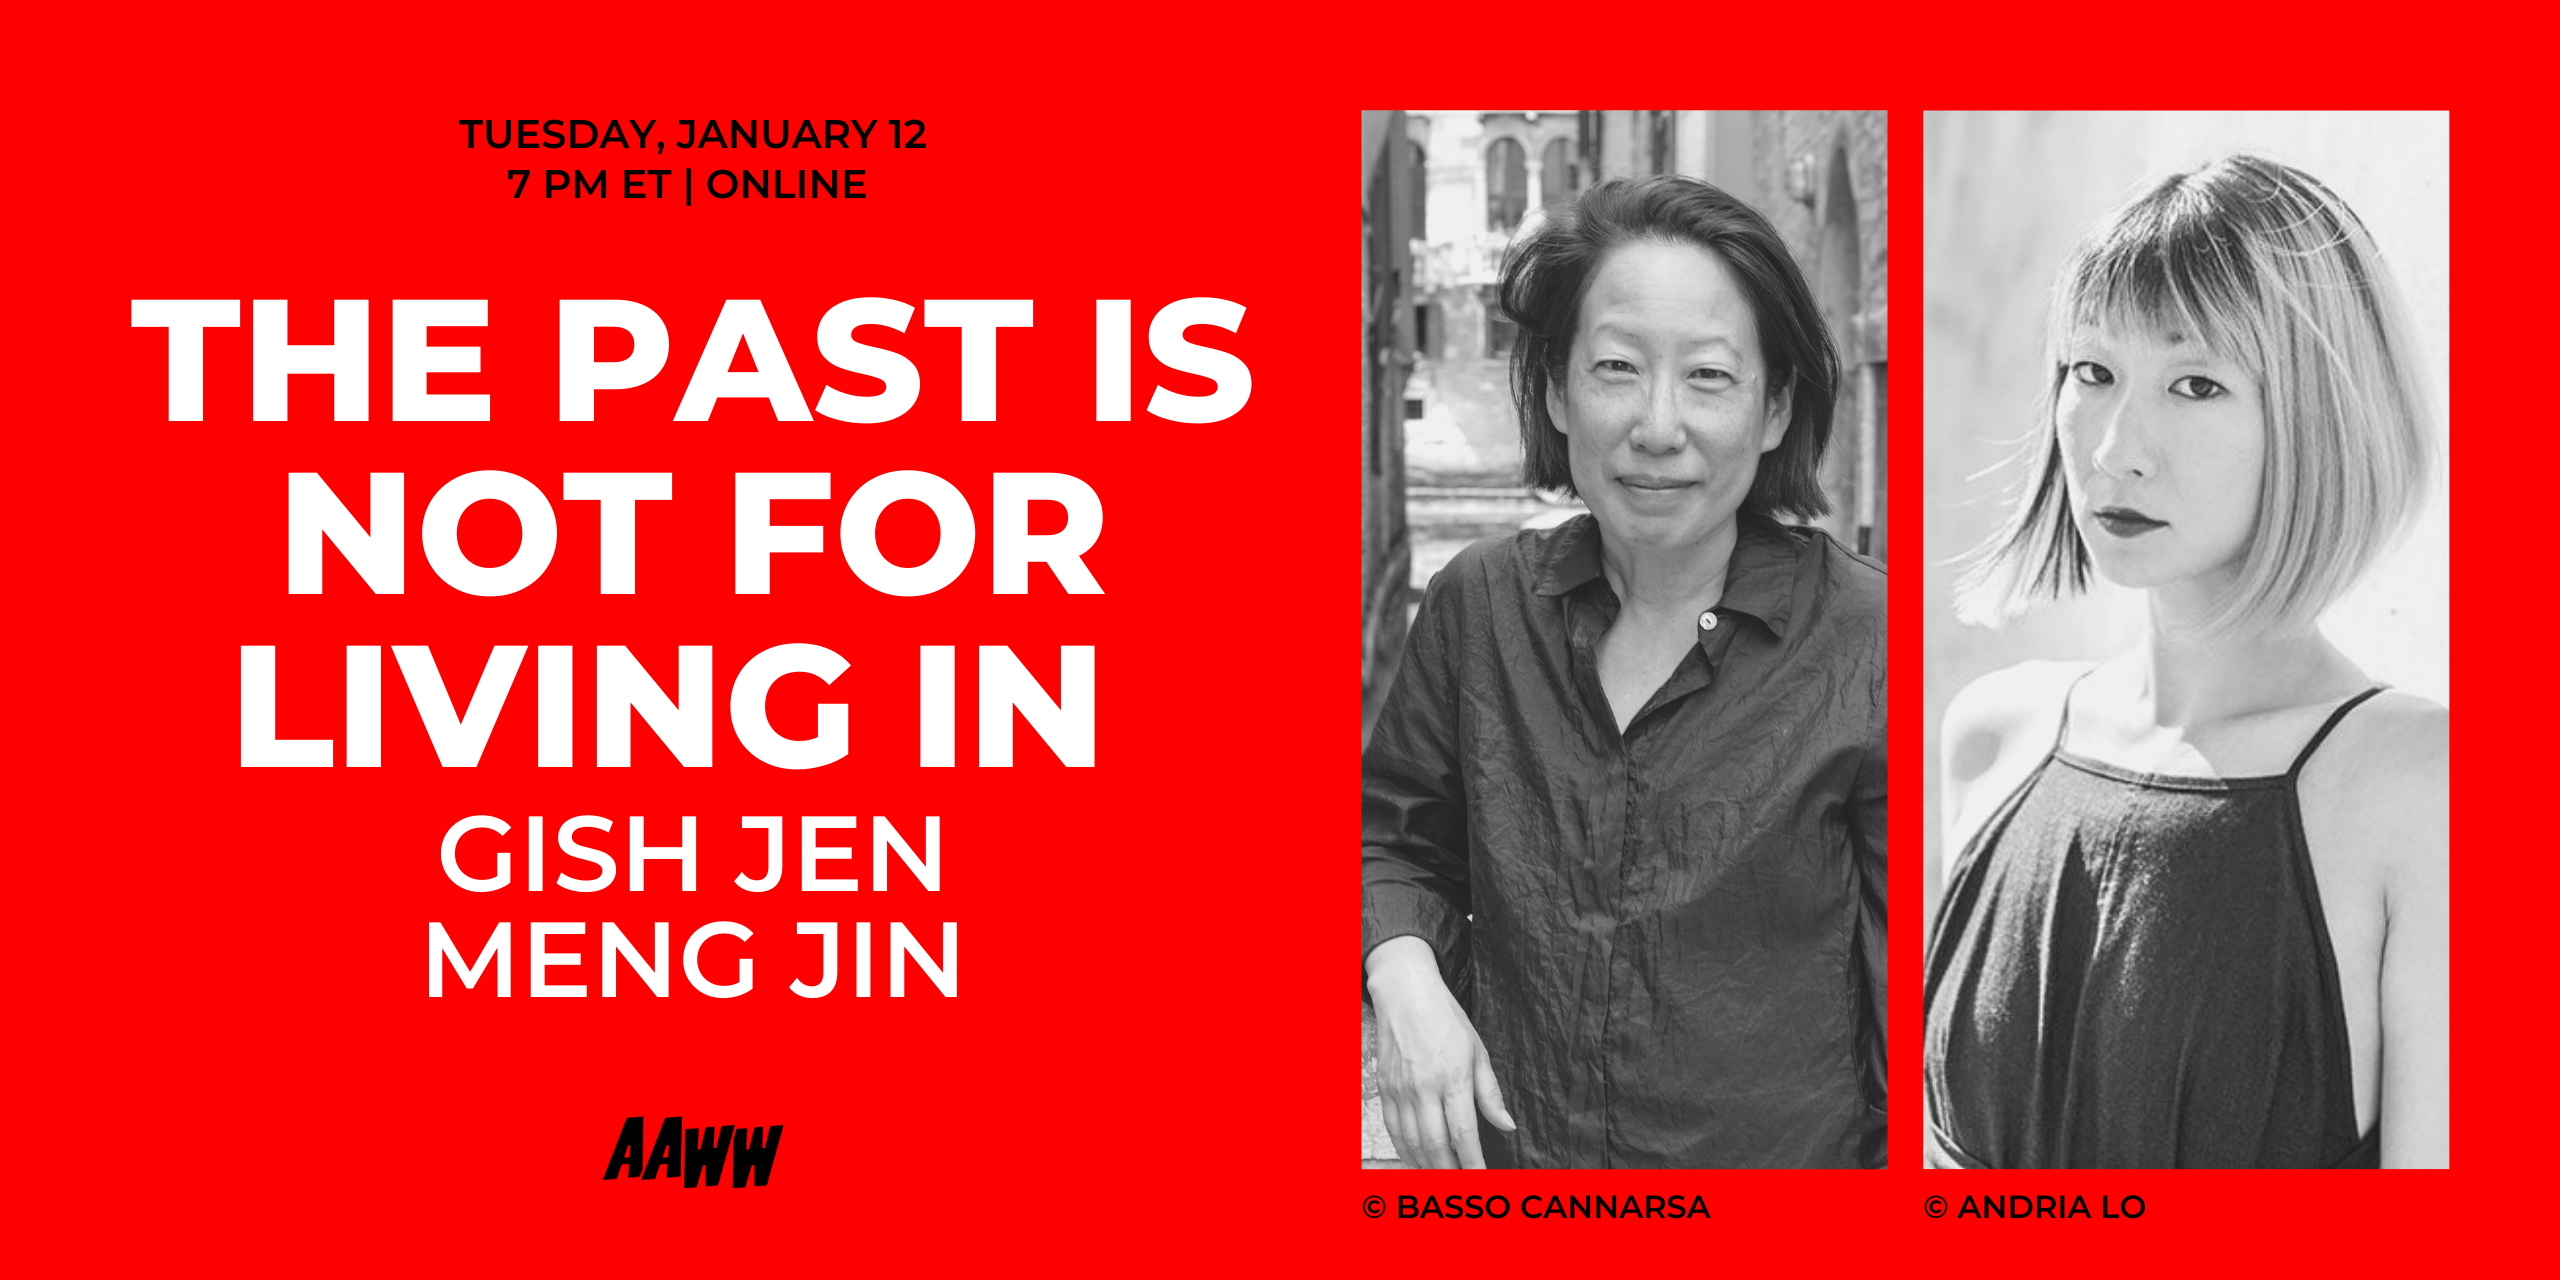 The Past is Not for Living In: Gish Jen and Meng Jin